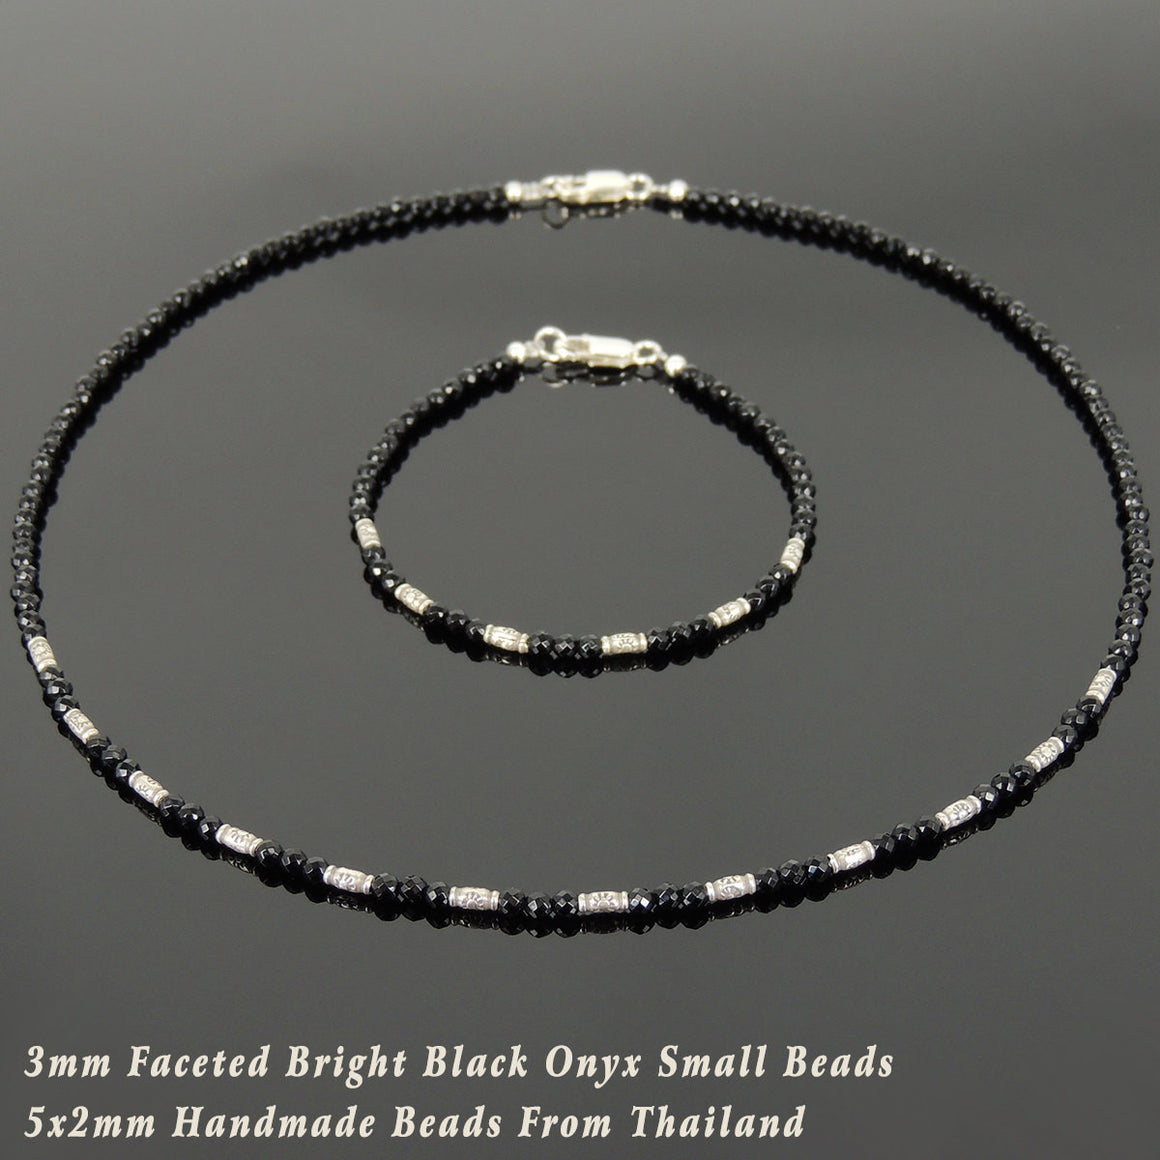 3mm Faceted Black Onyx Healing Gemstone Bracelet & Necklace Set with S925 Sterling Silver Vintage Sun Barrel Beads & Clasp - Handmade by Gem & Silver NK137_BR872